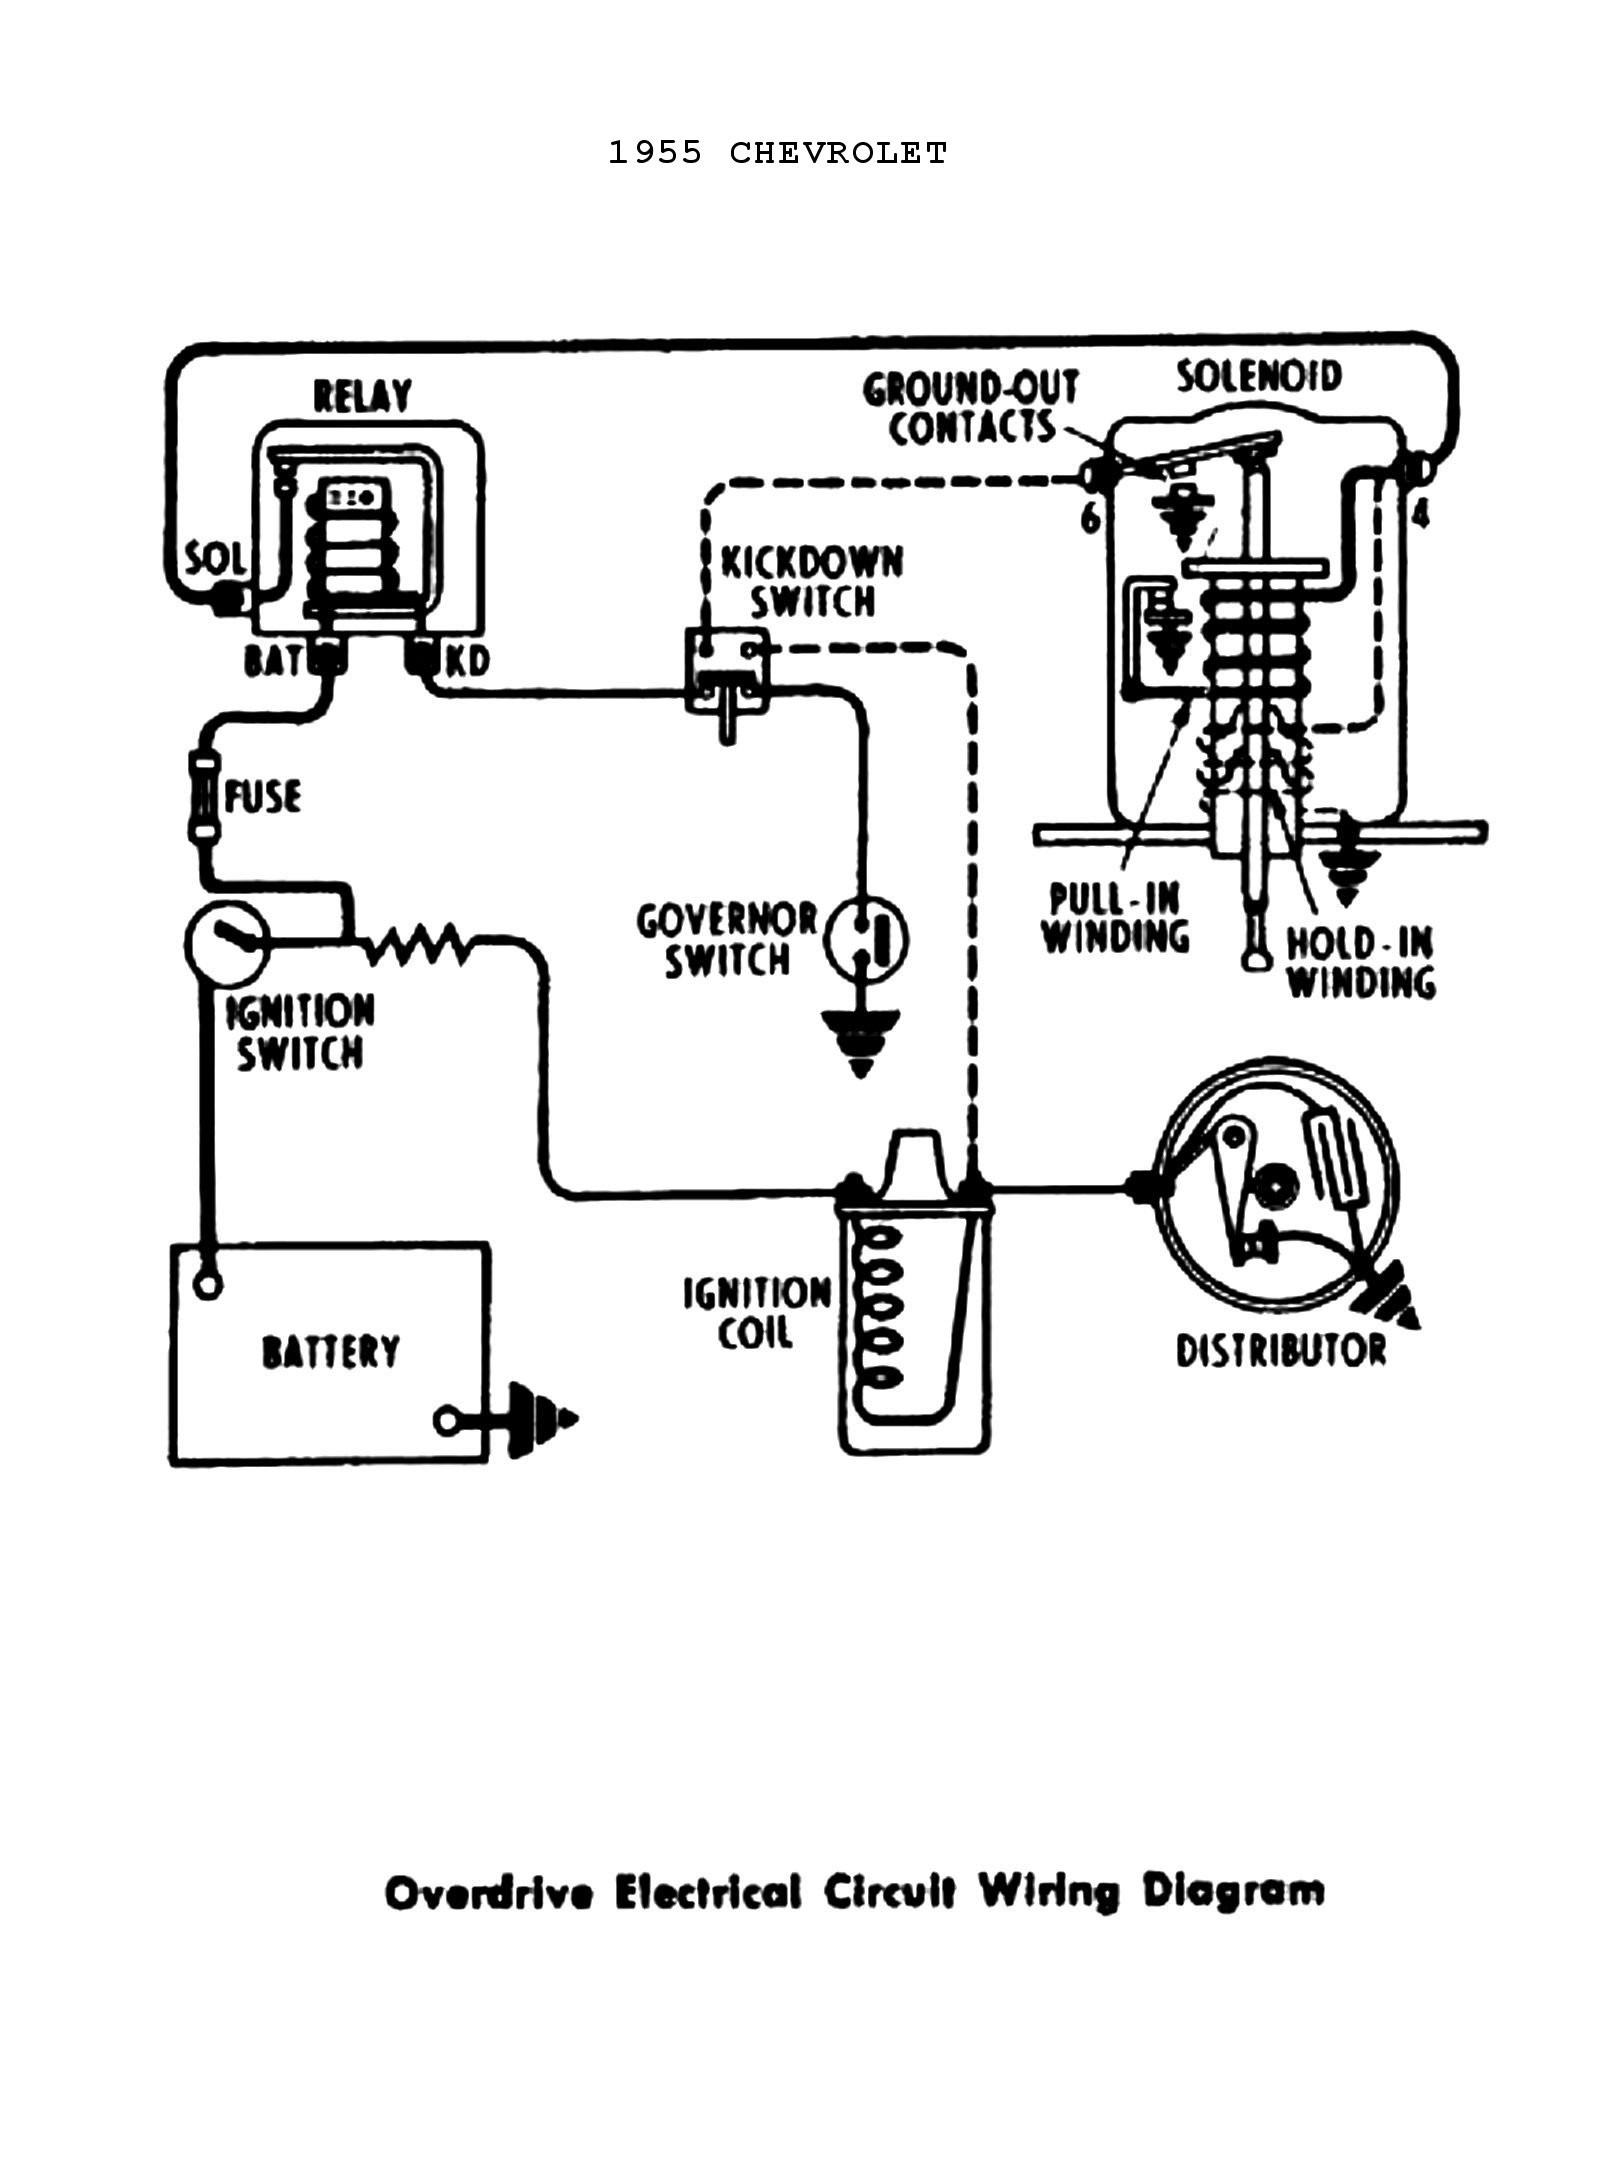 1955 power windows seats · 1955 overdrive circuit chevy wiring diagrams